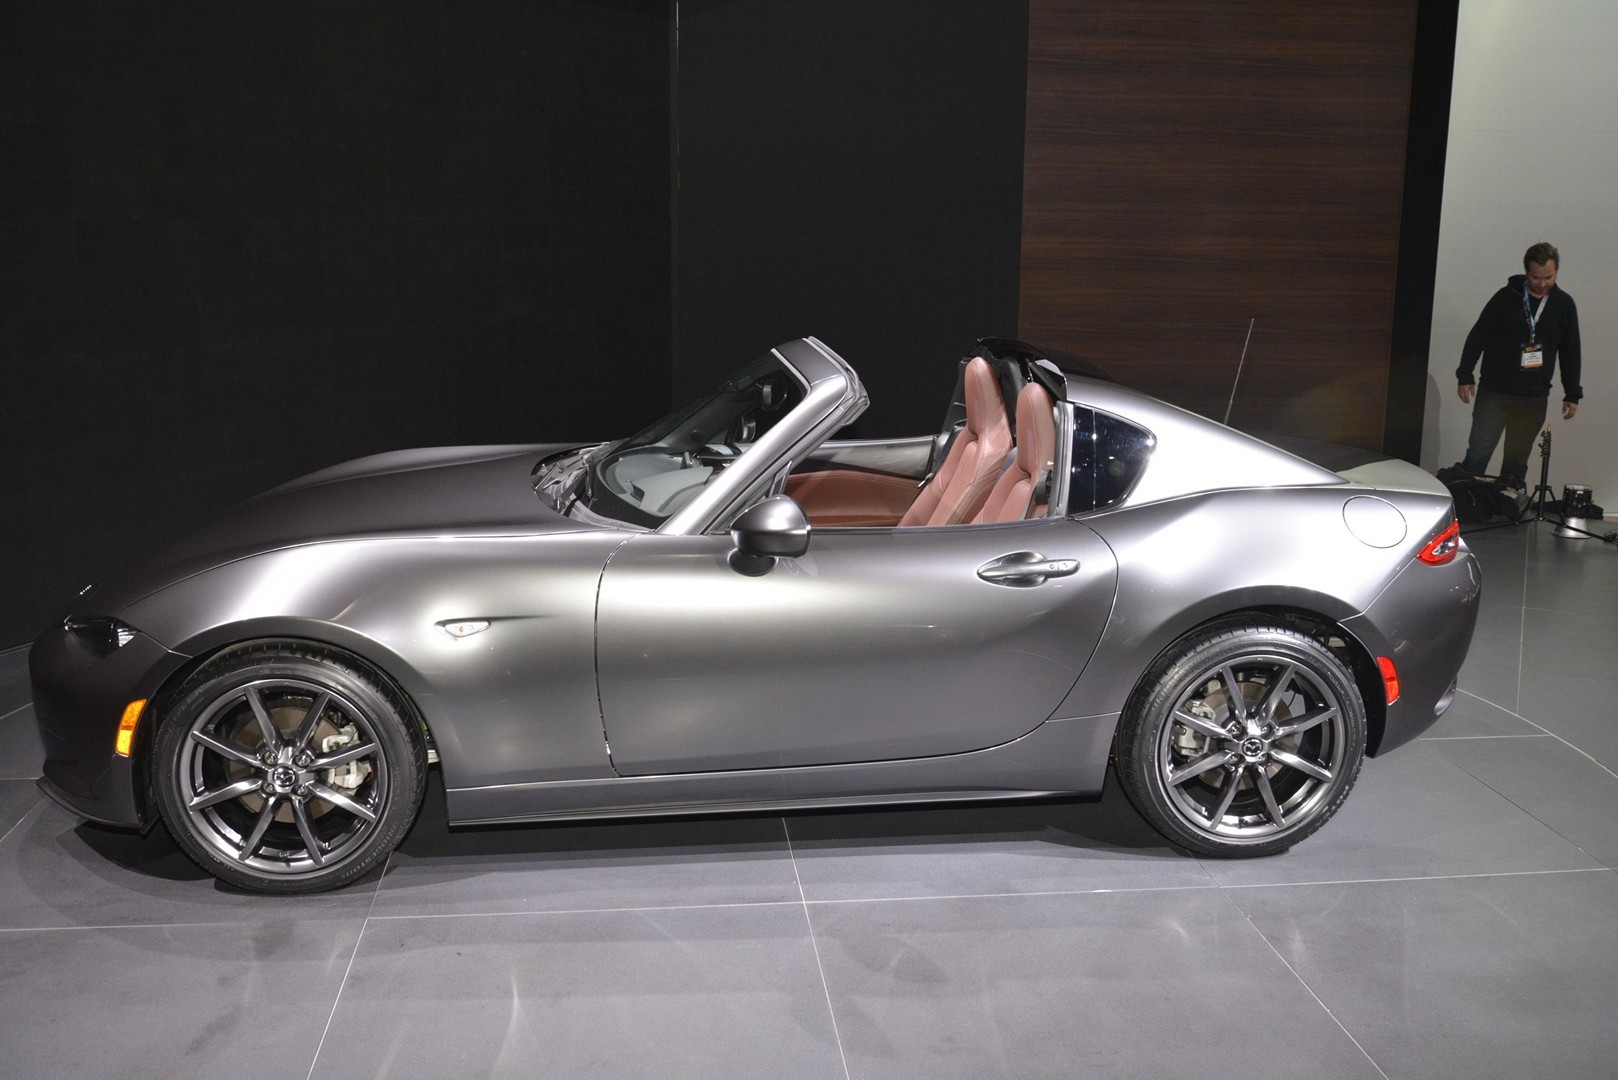 2017 Mazda Mx 5 Rf Features Fake Quarter Glass And Redish